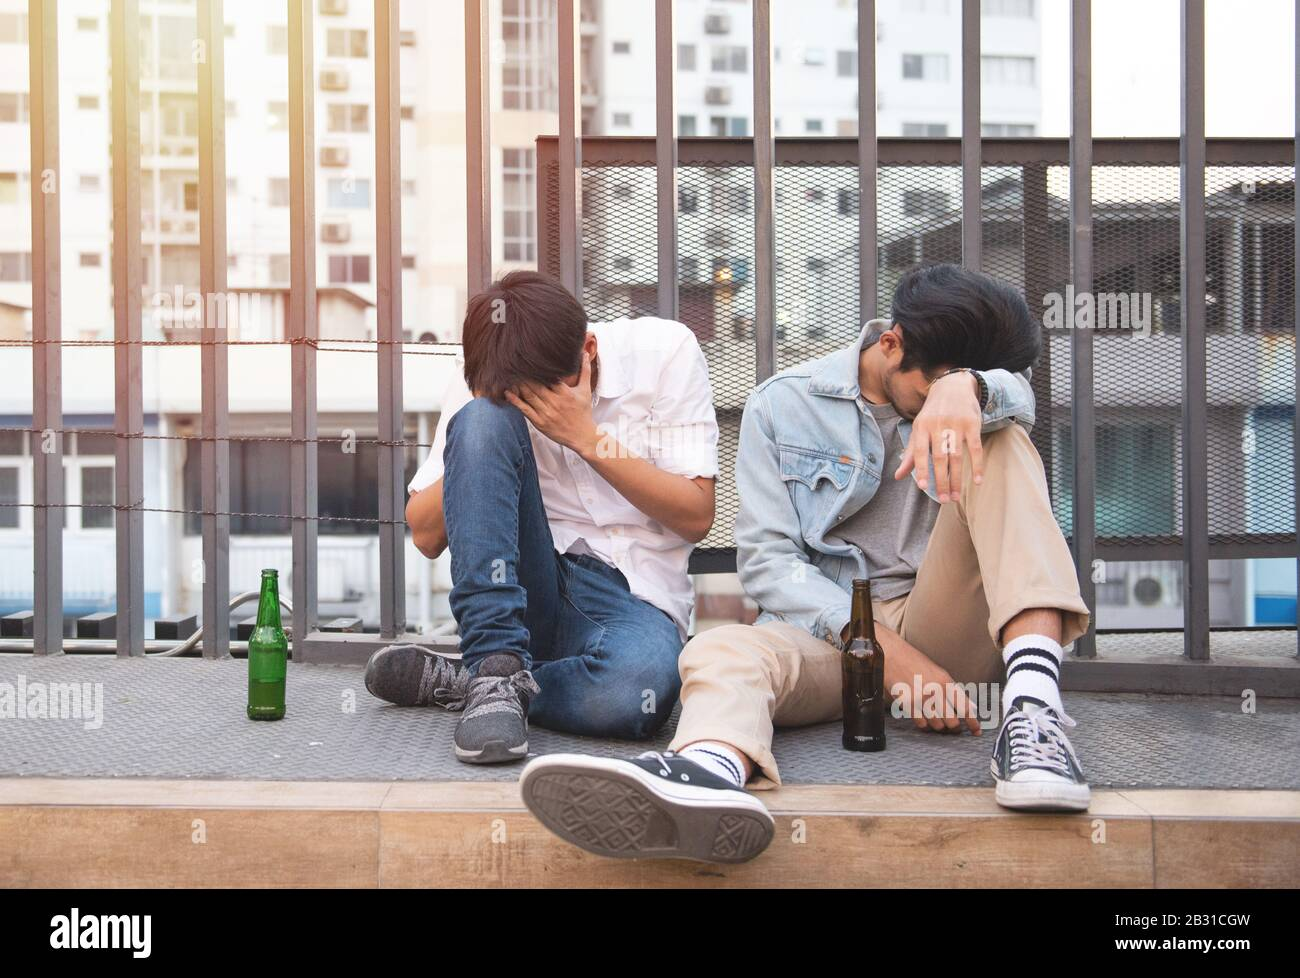 Two young men drunk and sit sleeping on street with bottle of beer in unhappy. Stock Photo